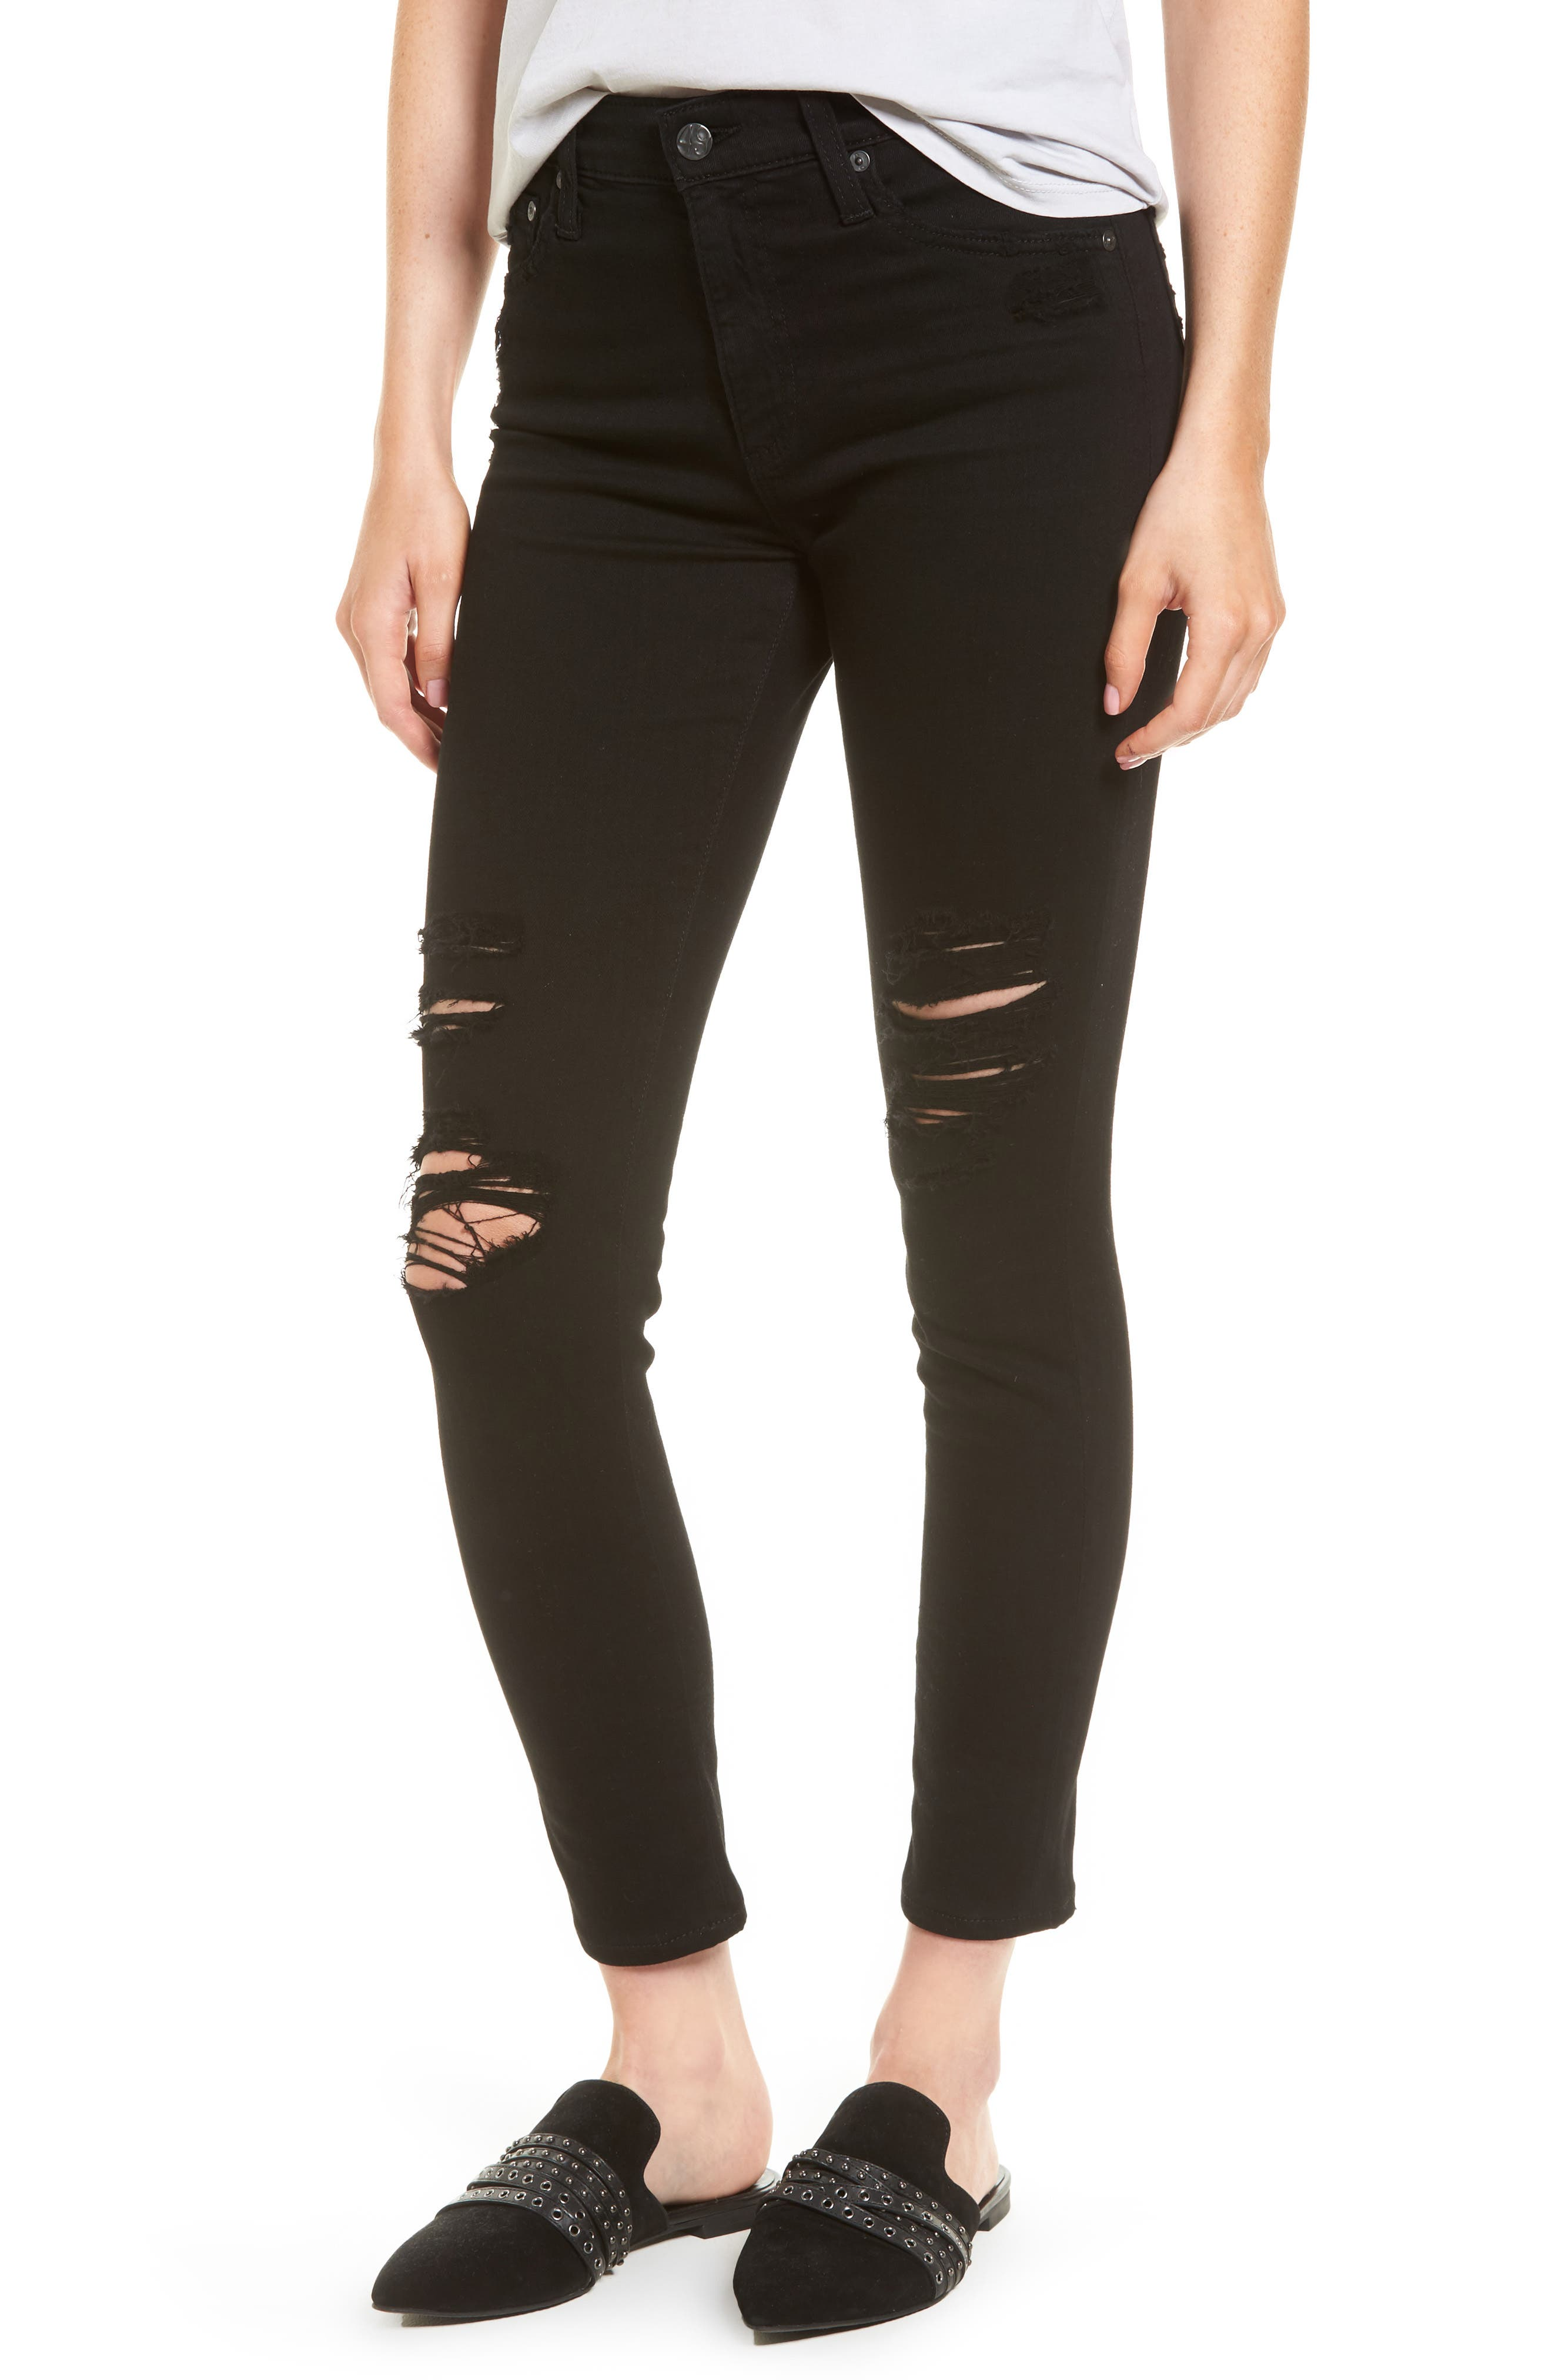 The Farrah High Waist Ankle Skinny Faux Leather Pants,                         Main,                         color, 5 Years Black Destructed